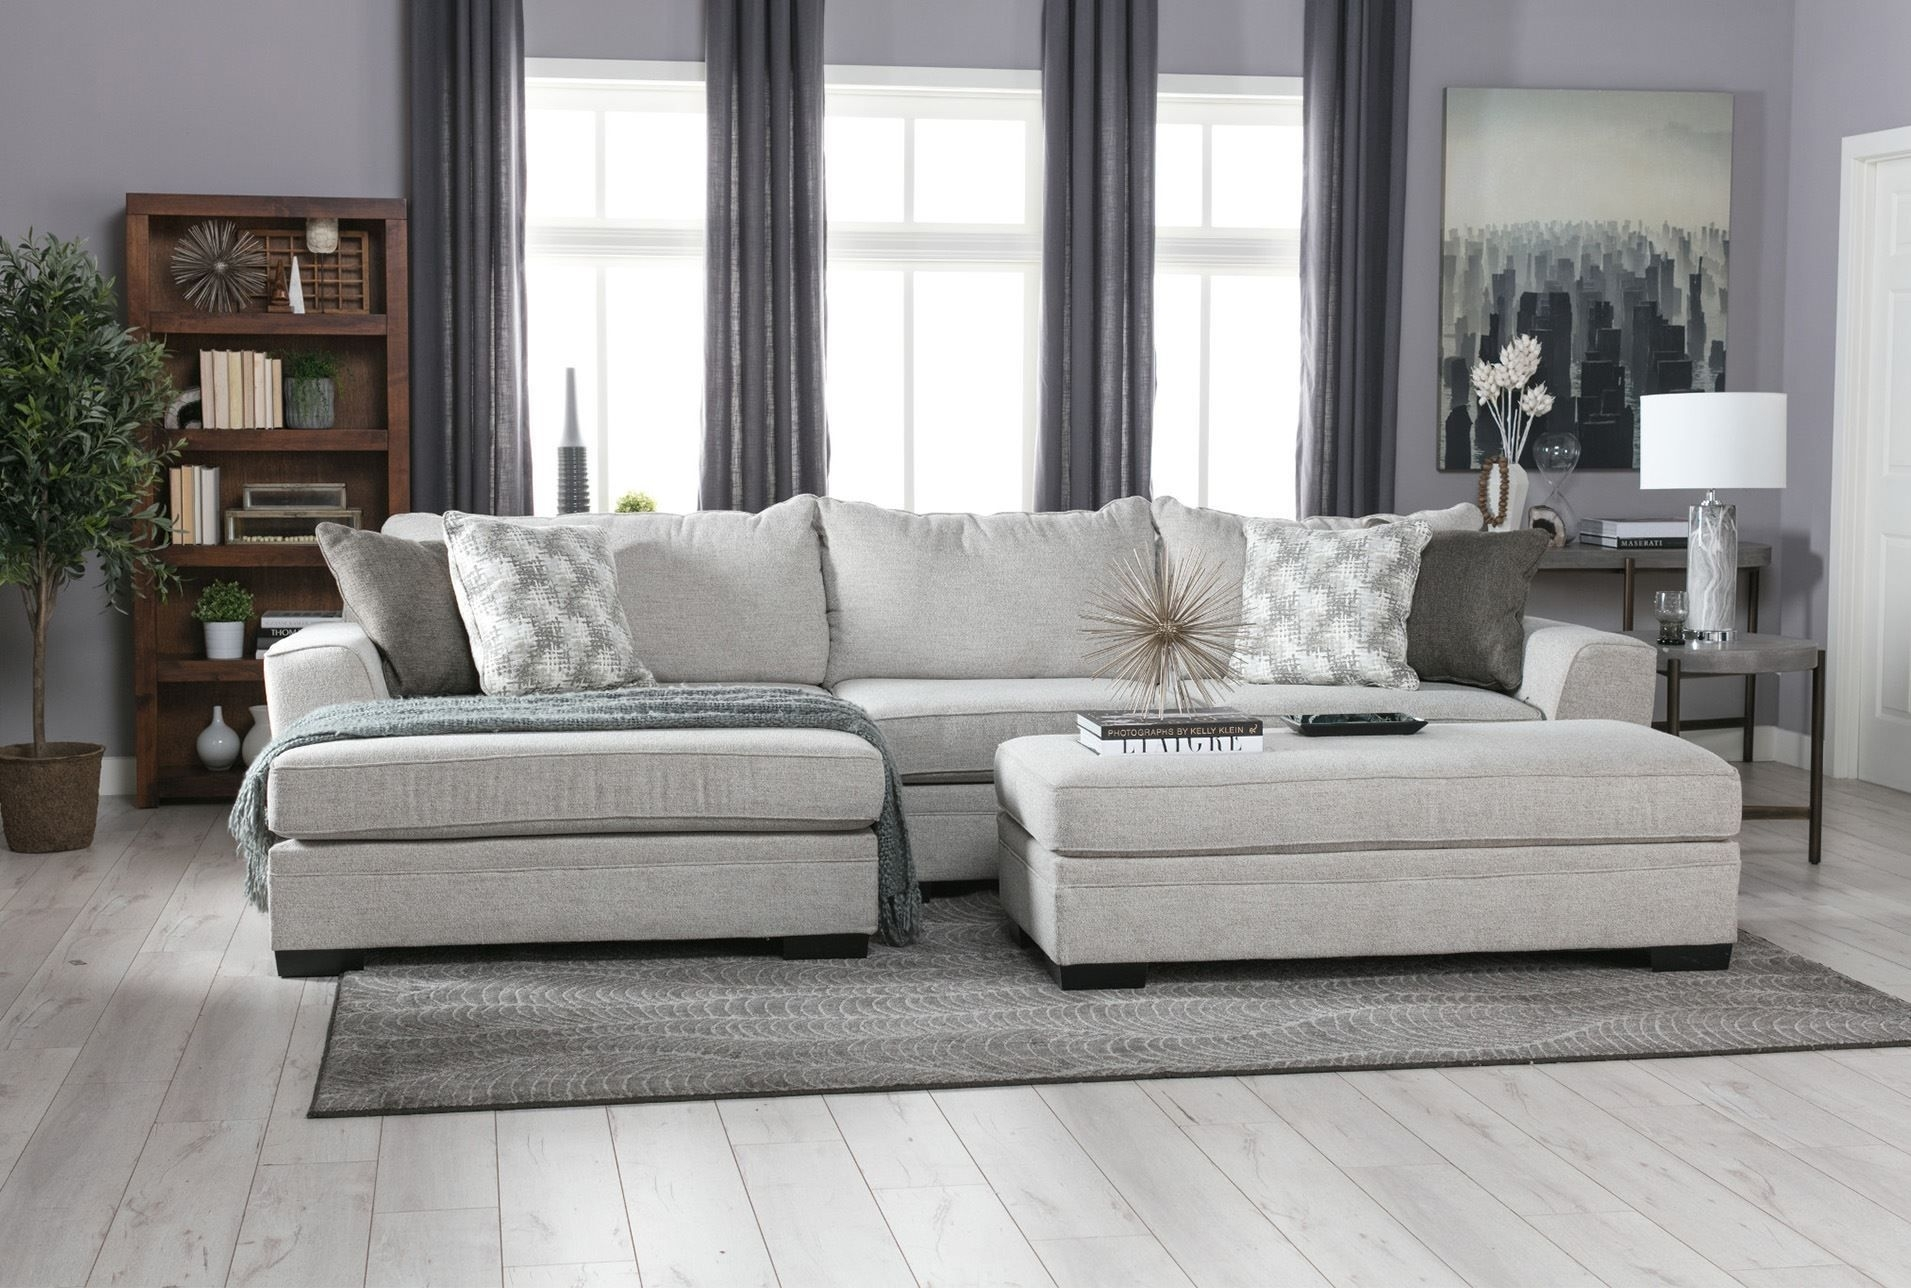 Delano 2 Piece Sectional W/laf Oversized Chaise | Sylvia Son Inside Arrowmask 2 Piece Sectionals With Laf Chaise (Image 8 of 25)